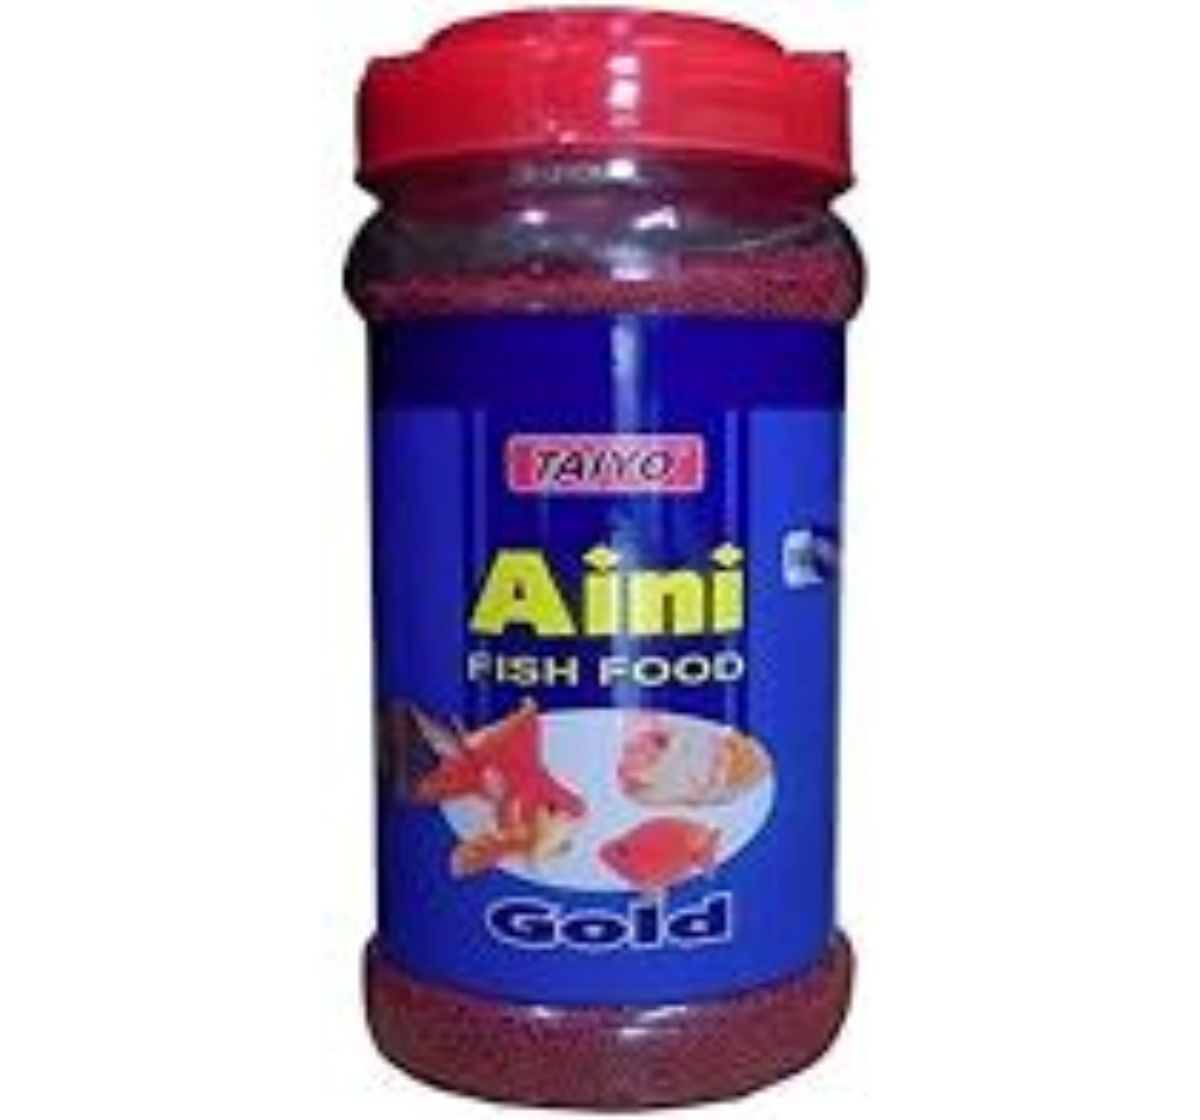 Taiyo Aini Gold Fish Food - 330 gm